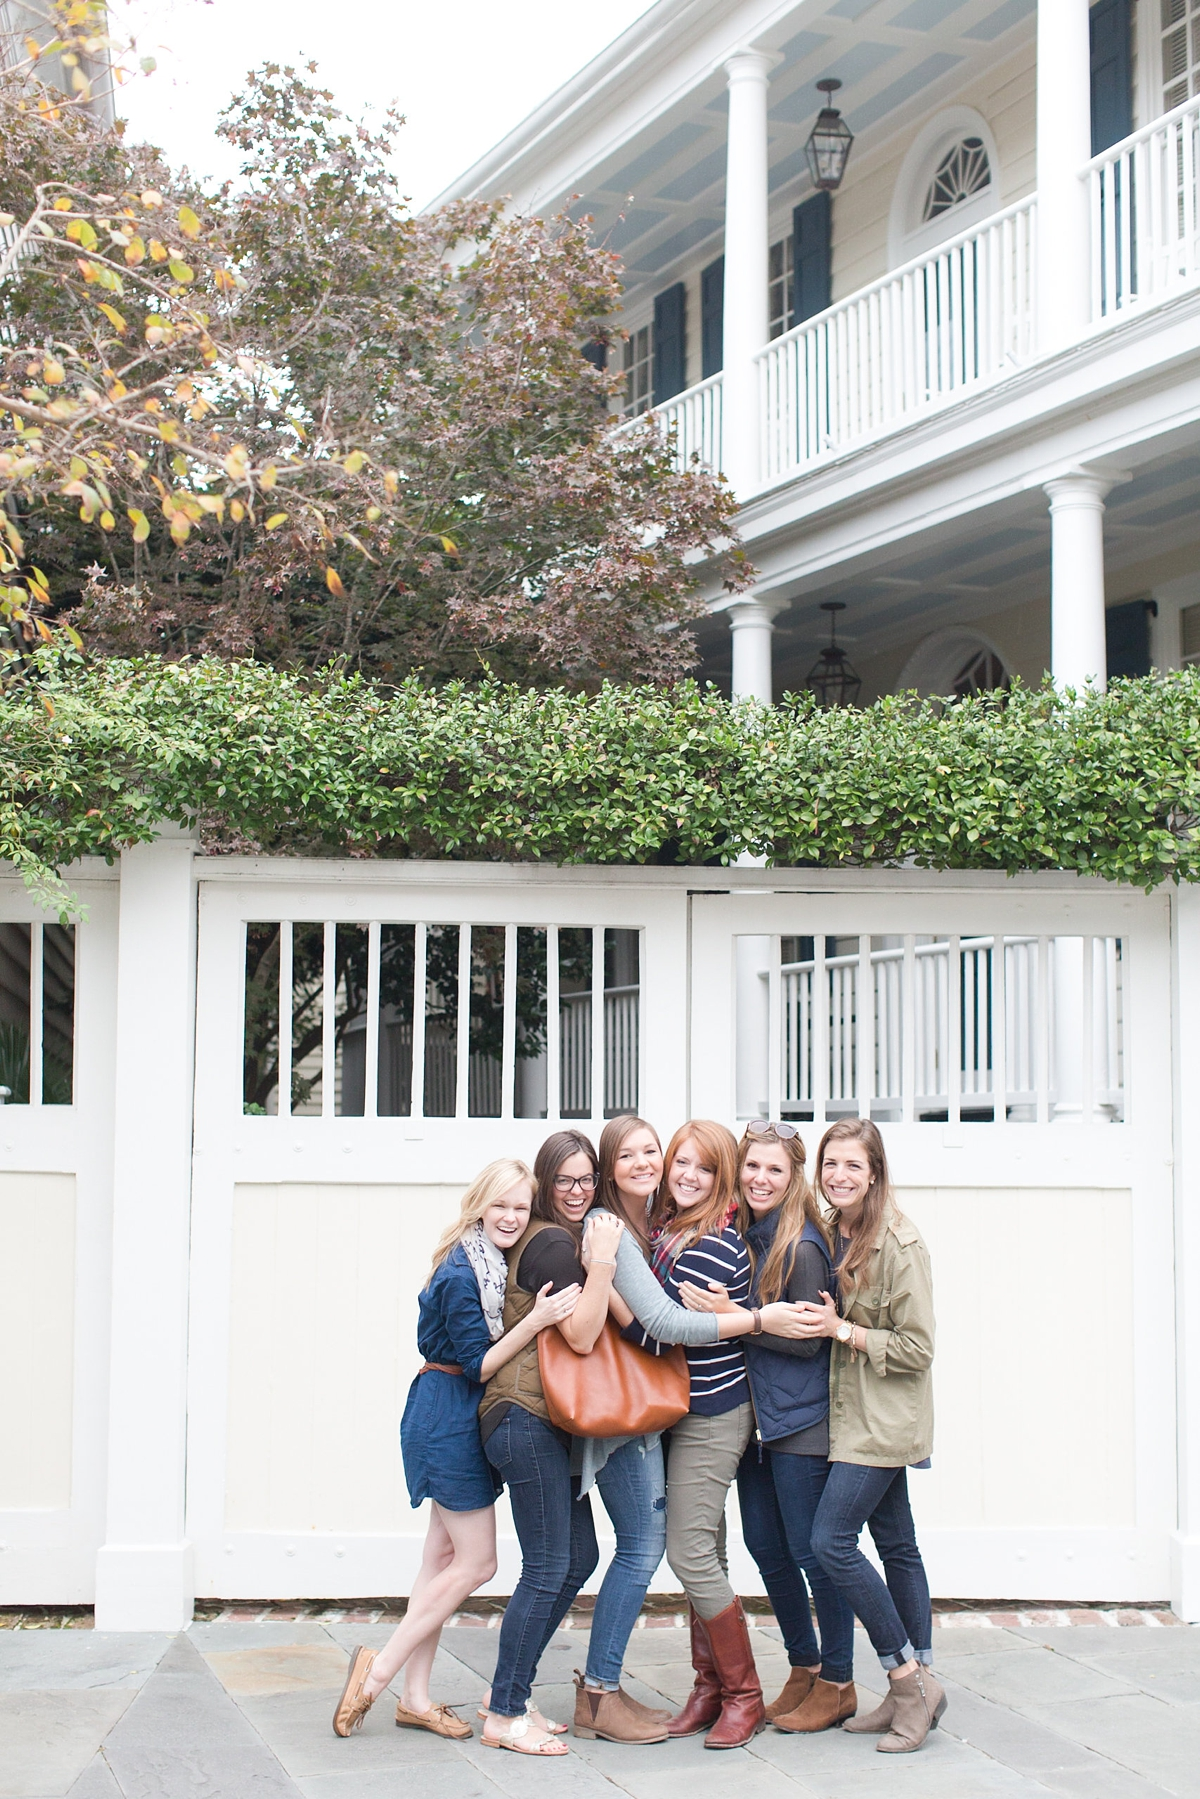 Charleston Travels. Must see tourist locations, site seeing in Low Country!  View More: http://amyandjordan.pass.us/charleston